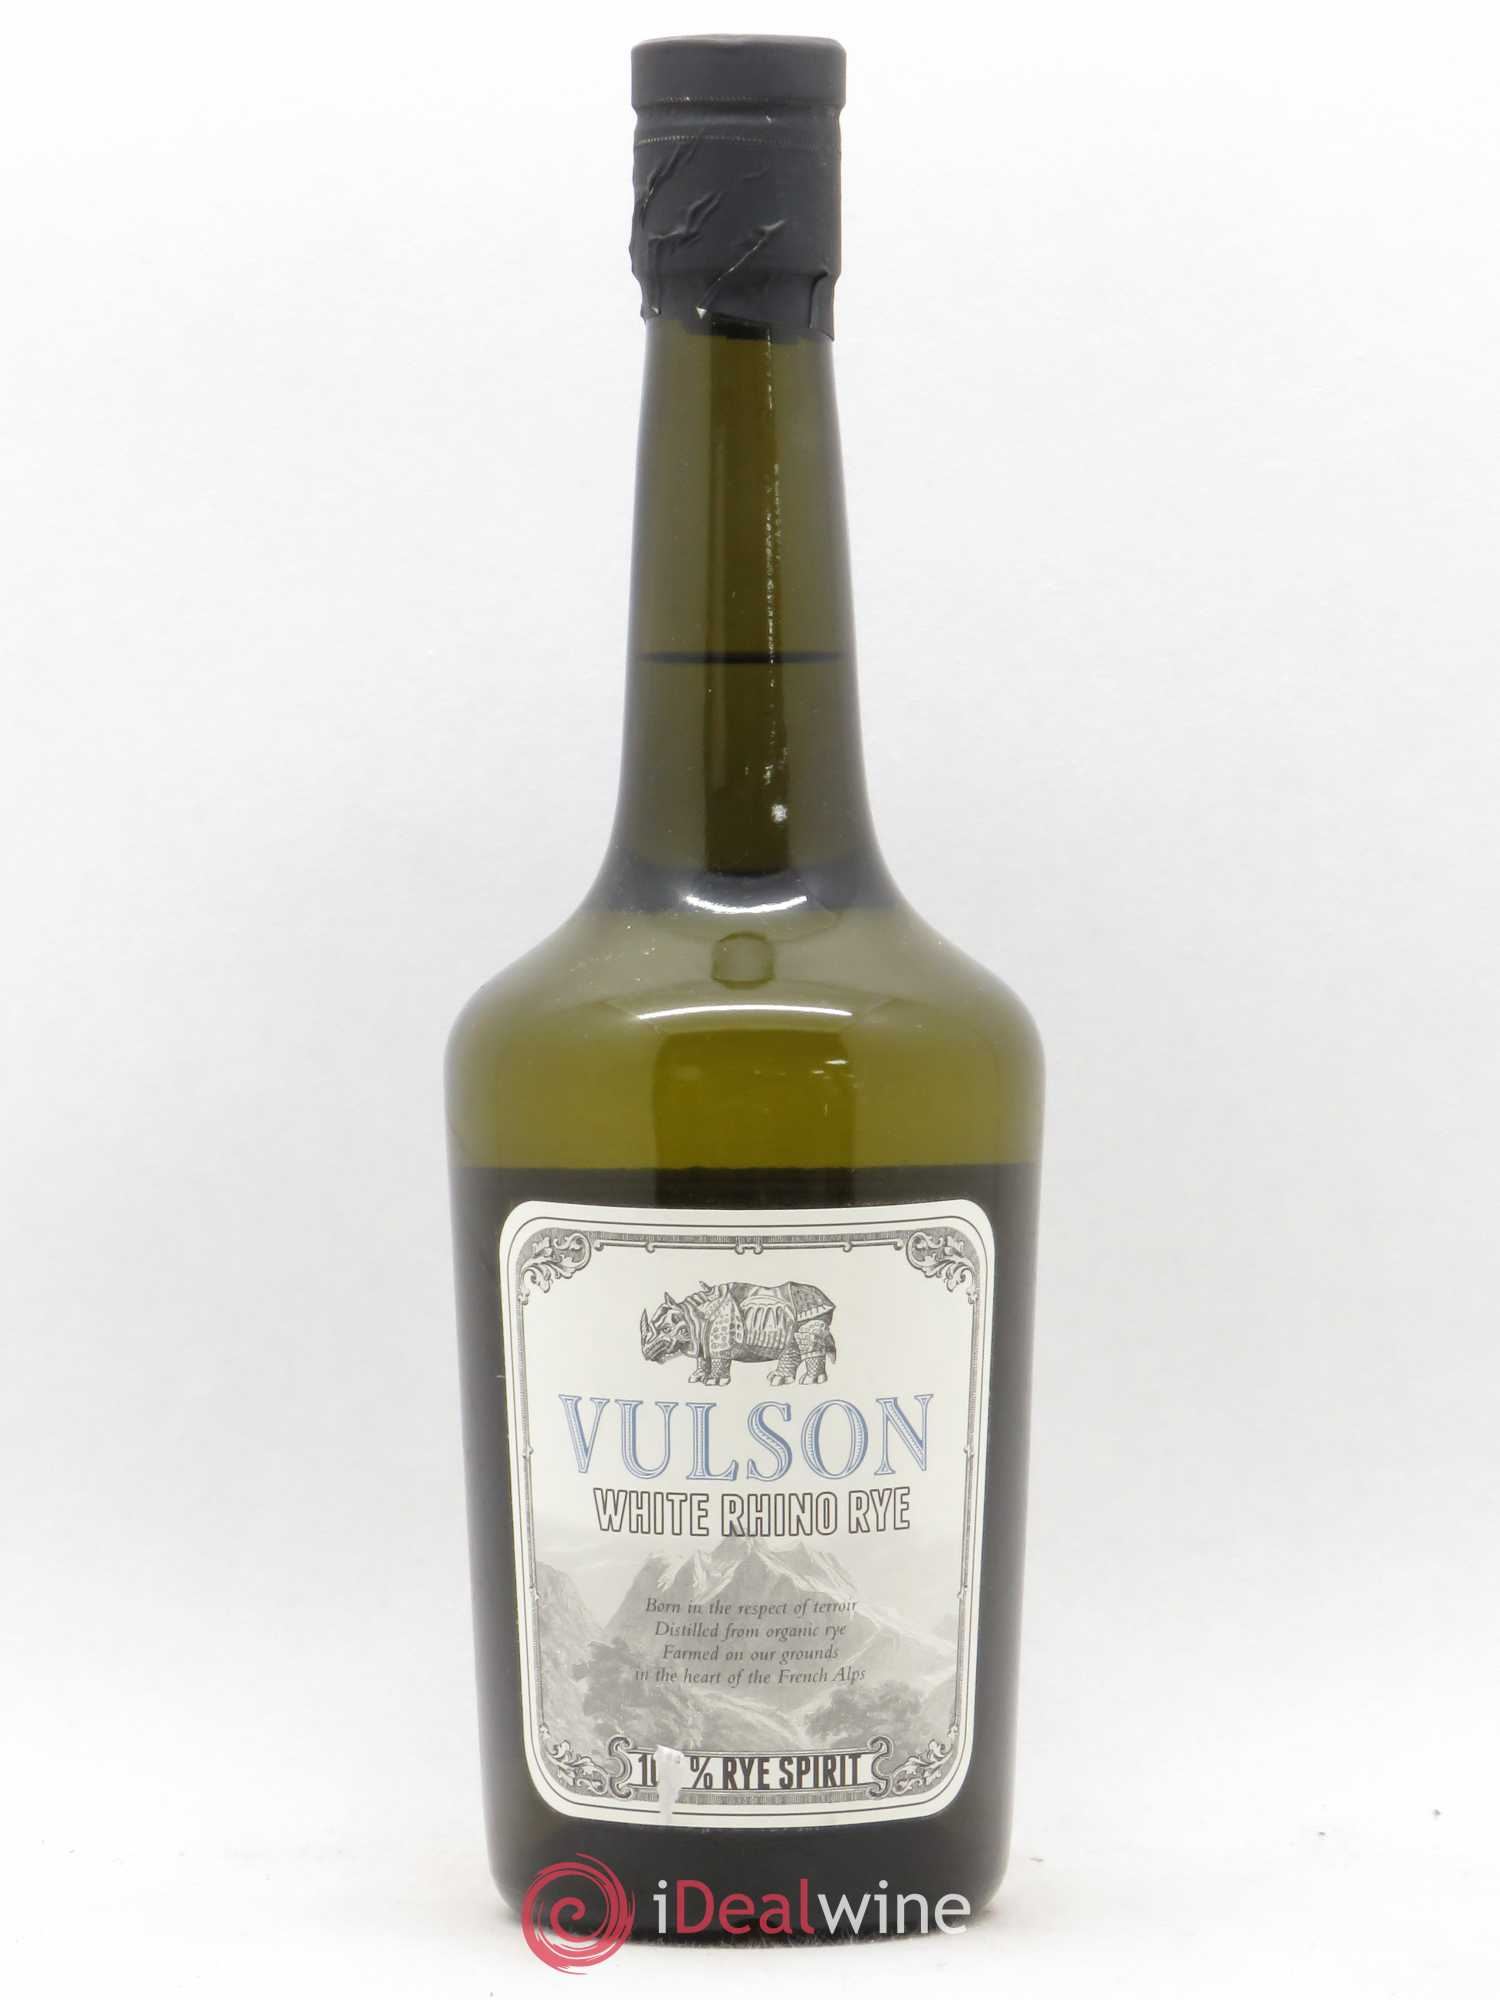 Whisky France Rye Whiskey Vulson White Rhino Domaine des Hautes Glaces (no reserve)  - Lot of 1 Bottle